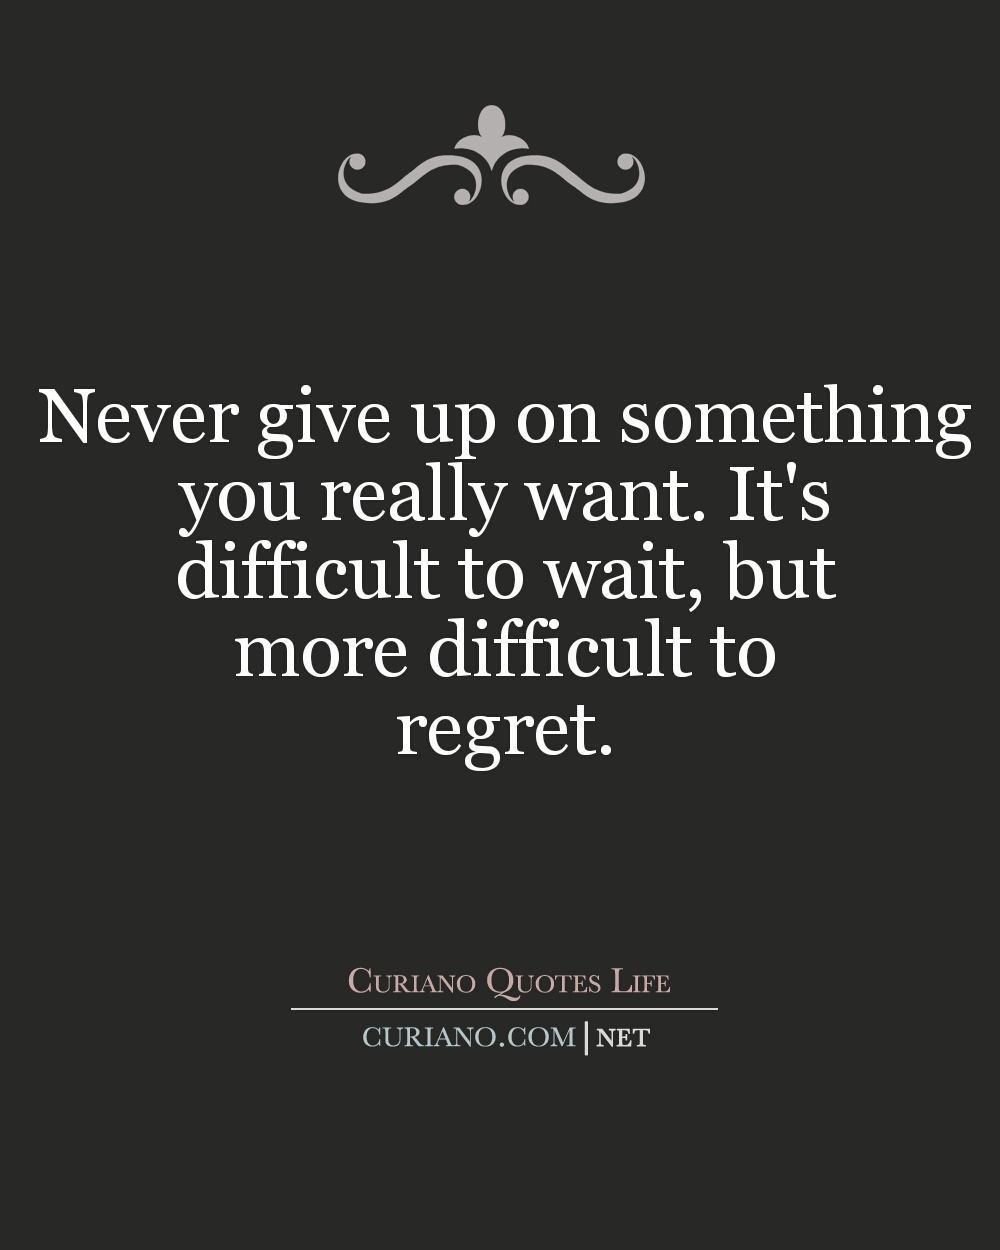 This blog (Curiano Quotes Life) shows Quotes, Best Life Quote